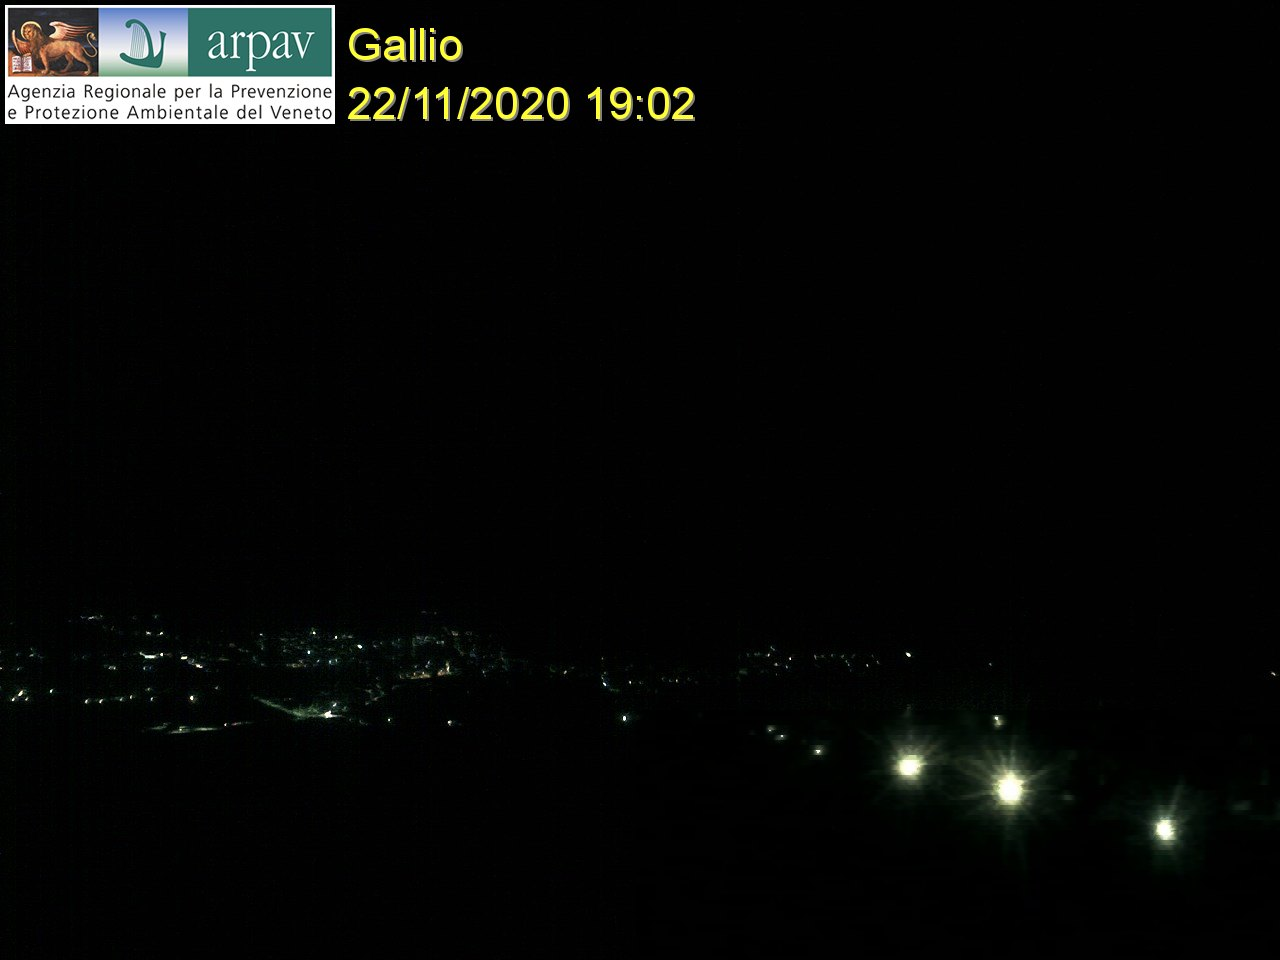 gallio webcam